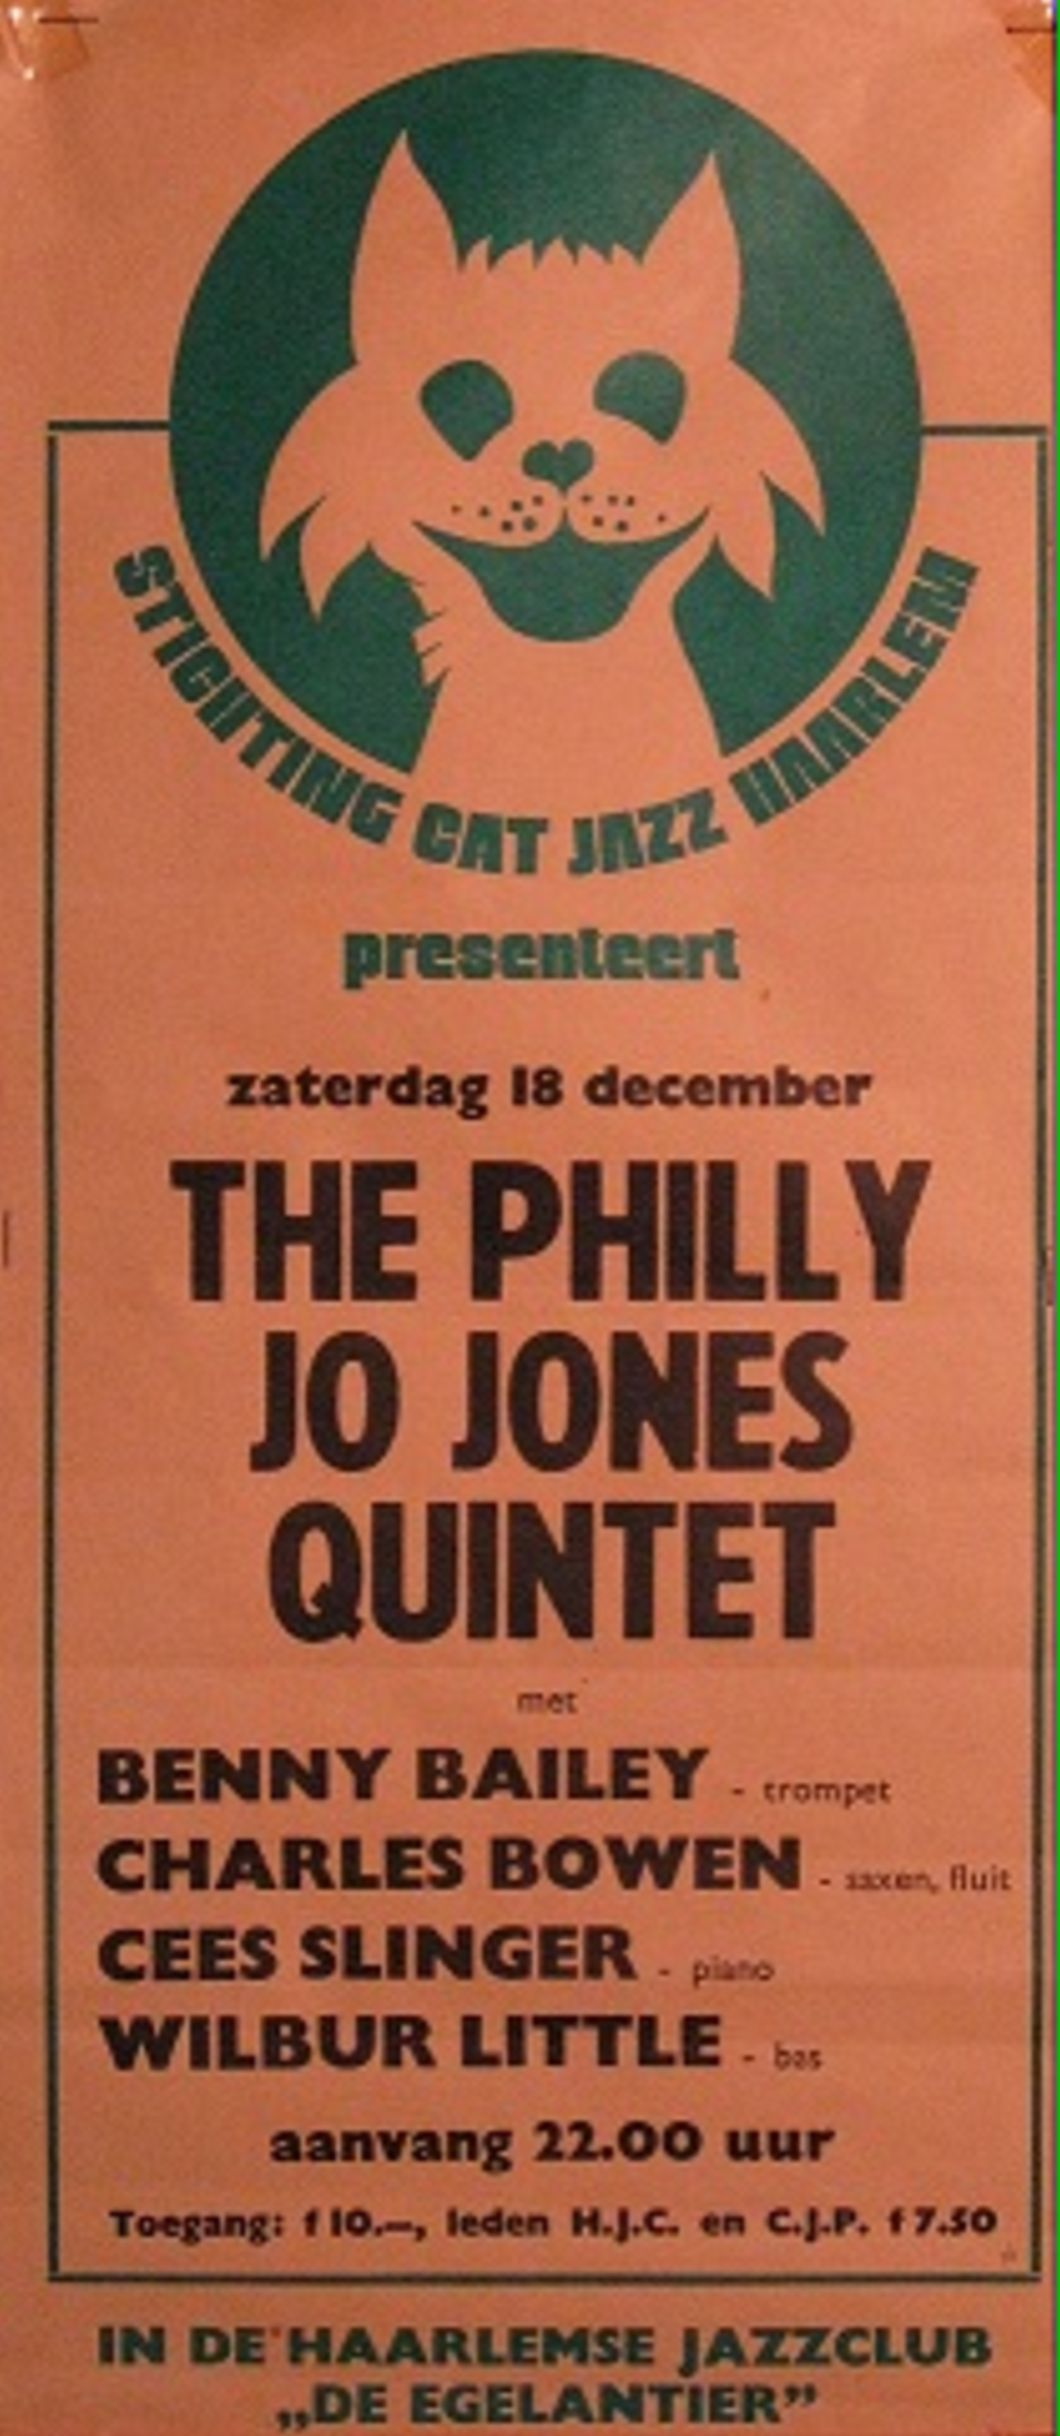 Philly Joe Jones quintet